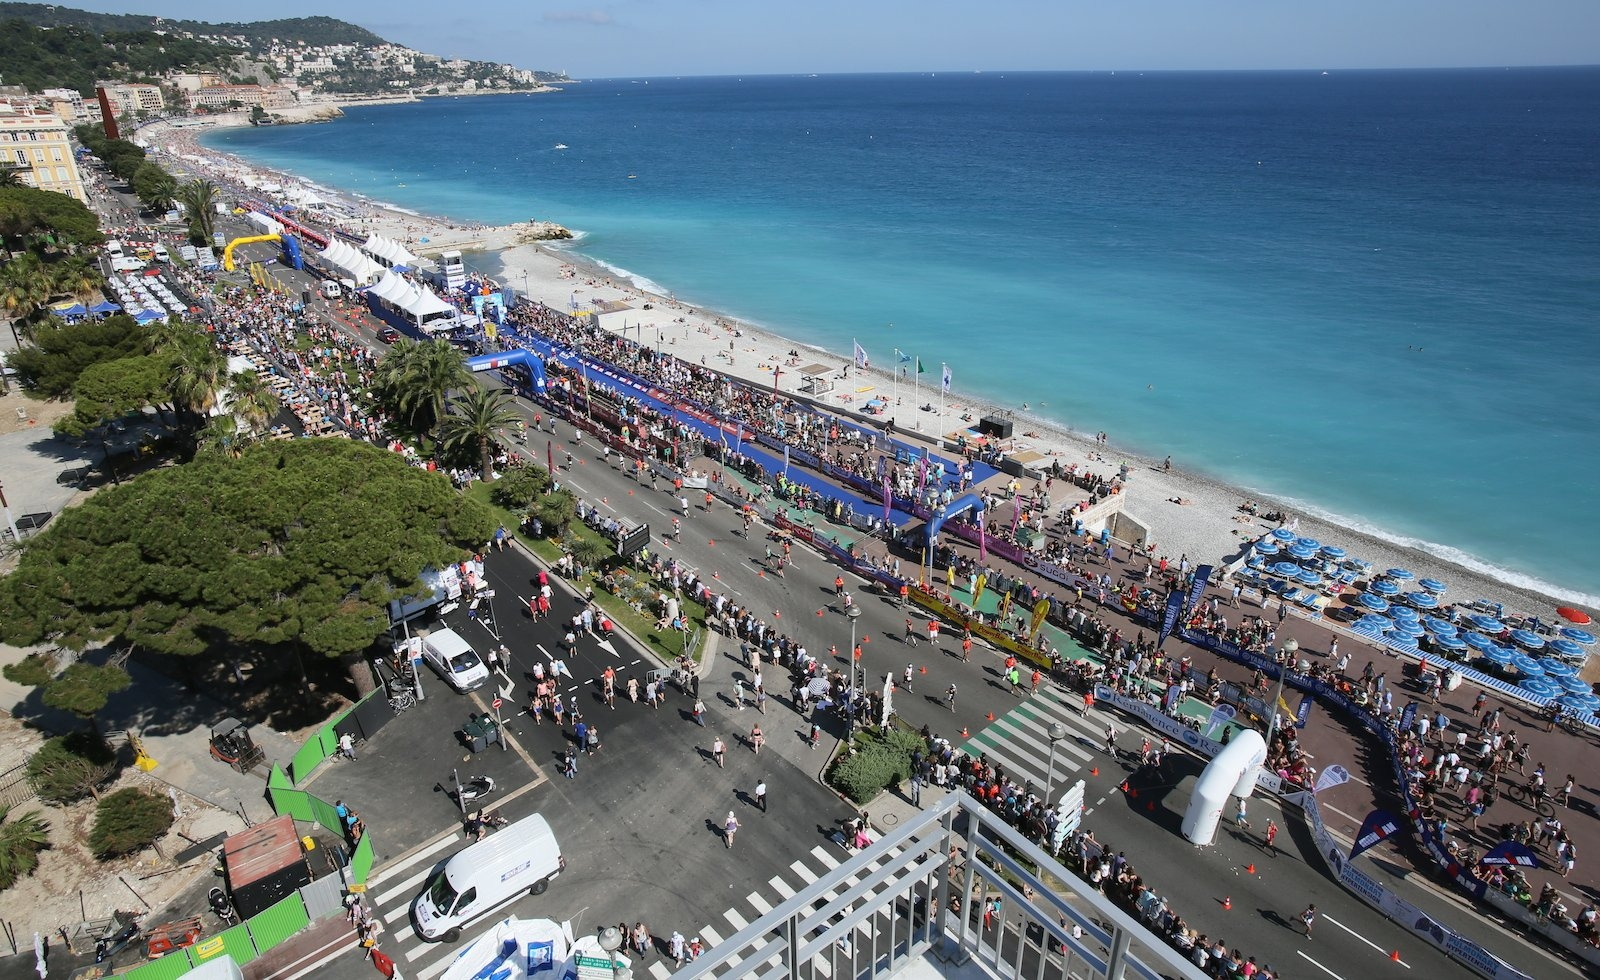 Ironman Announces 2019 70.3 World Championships To Be Held In Nice 70.3 Calendar 2019